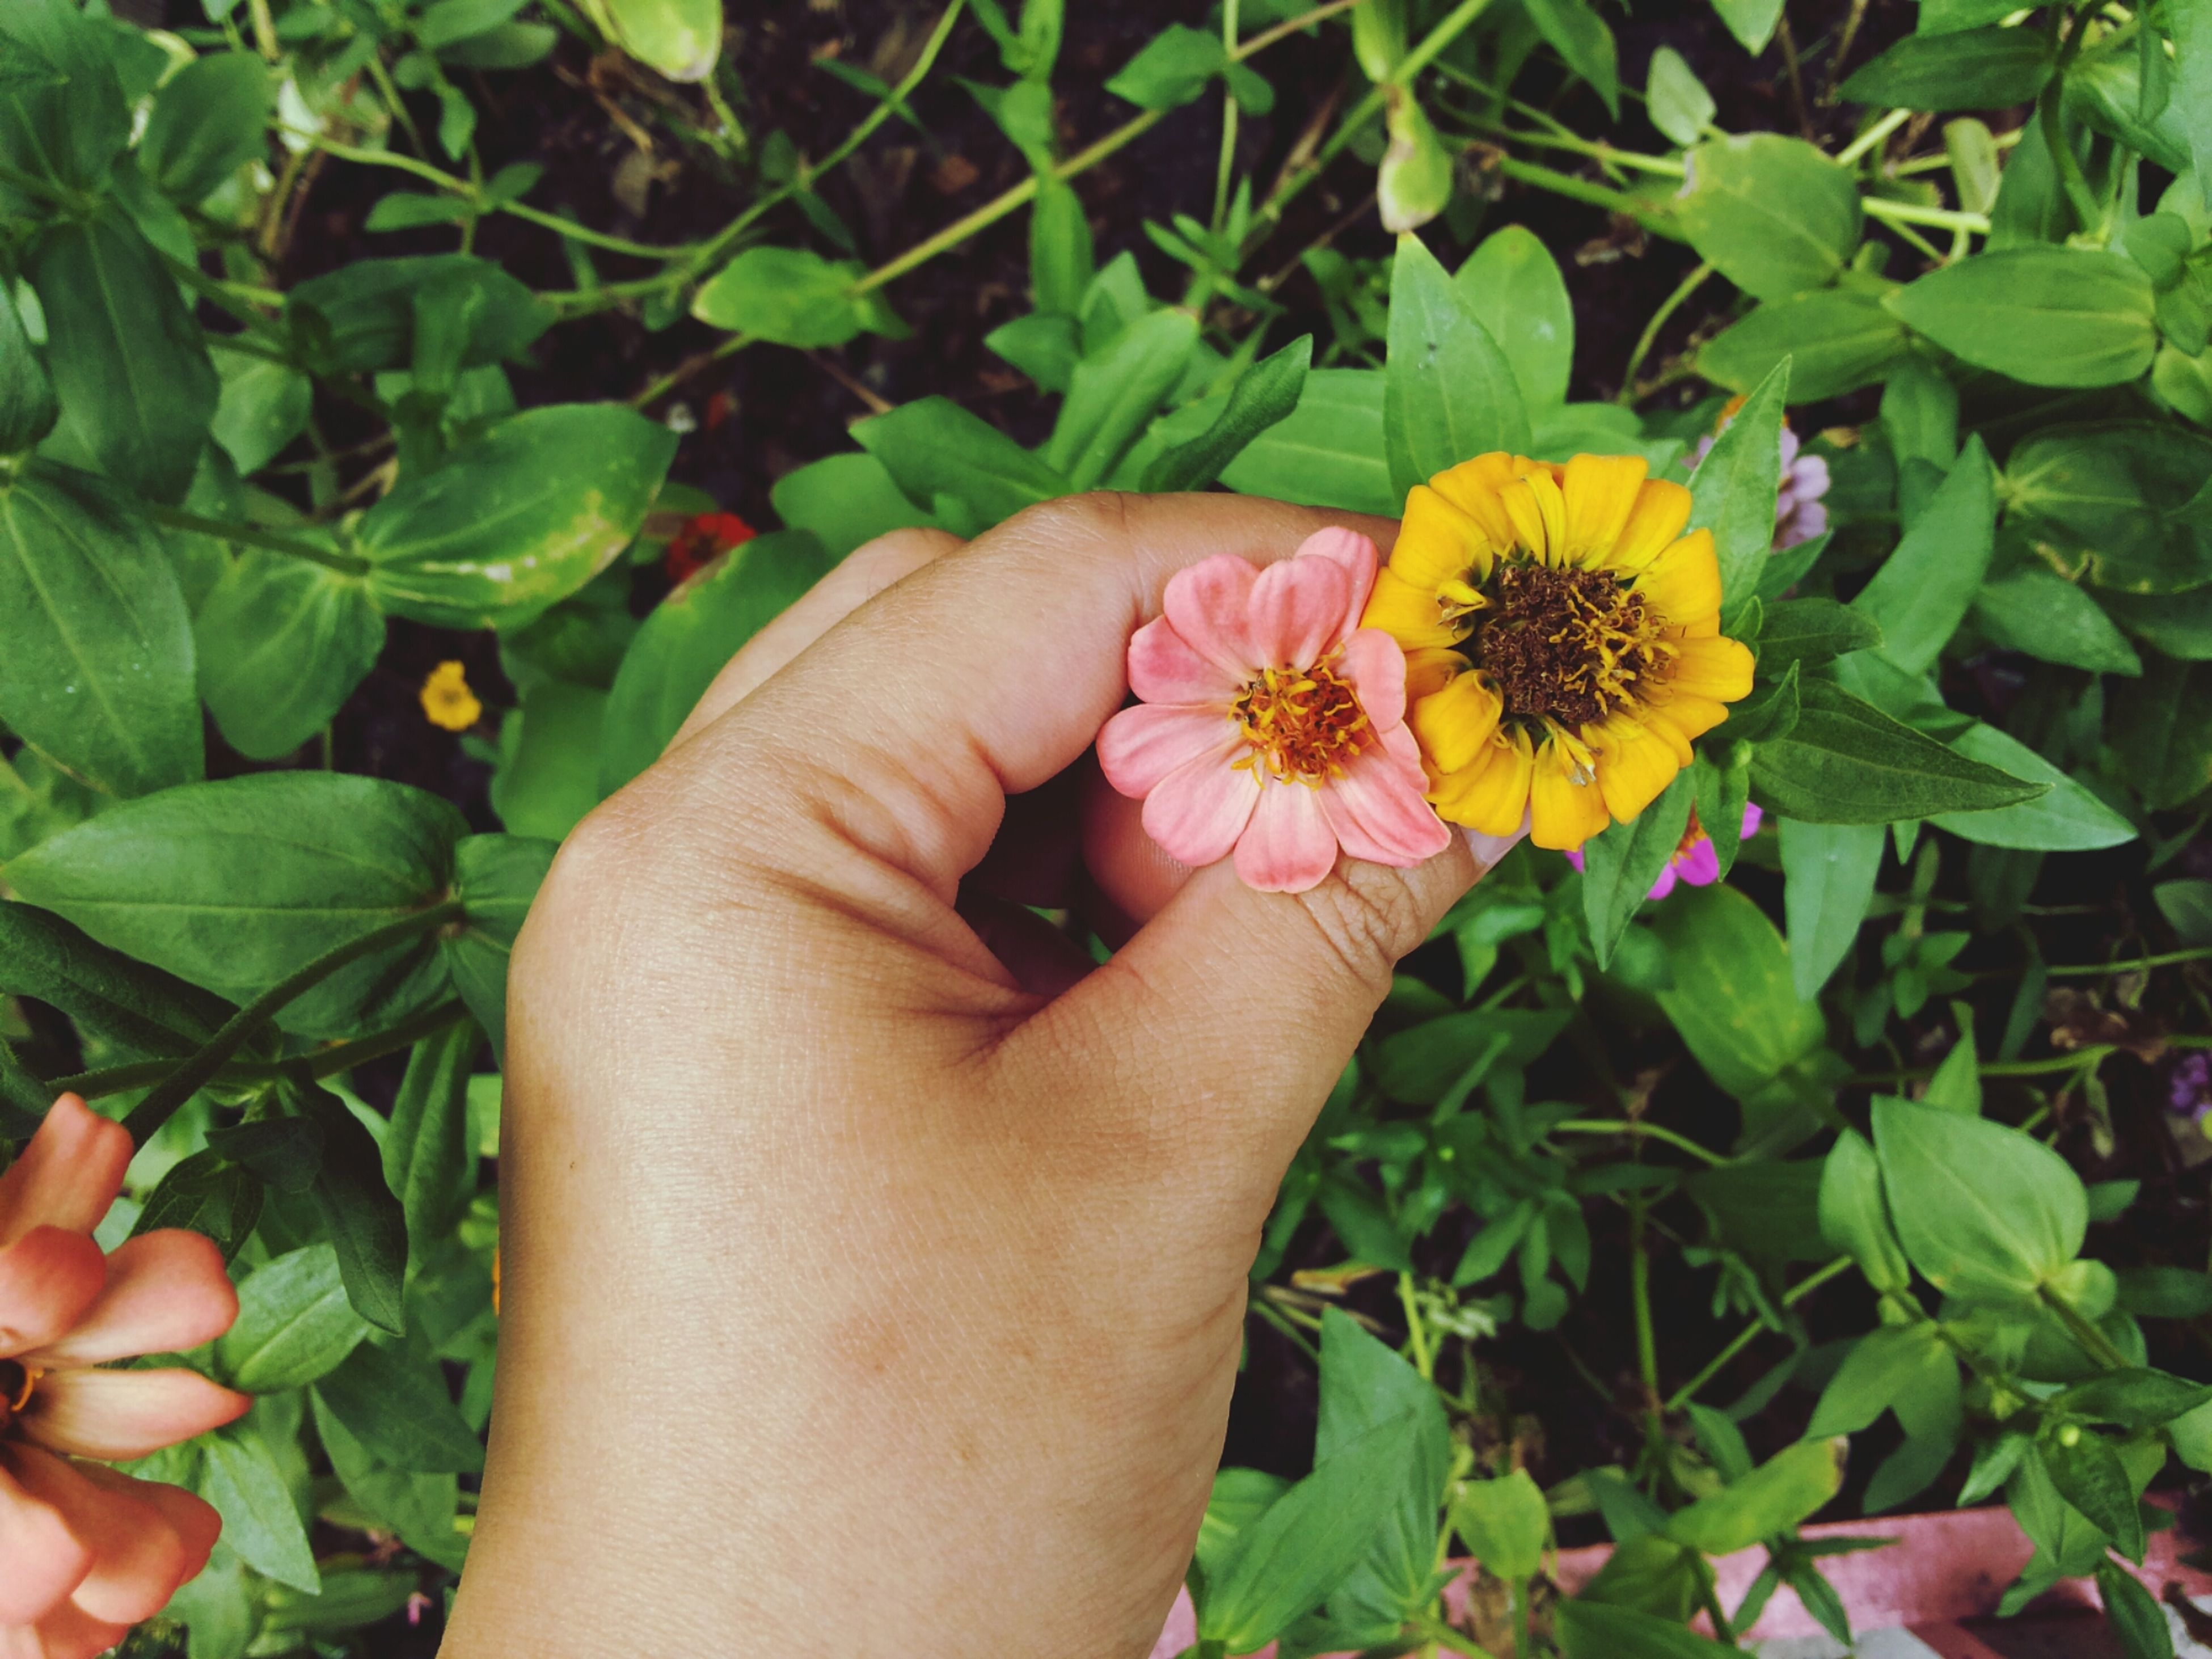 flower, person, petal, freshness, fragility, flower head, holding, plant, growth, single flower, yellow, part of, human finger, leaf, beauty in nature, nature, personal perspective